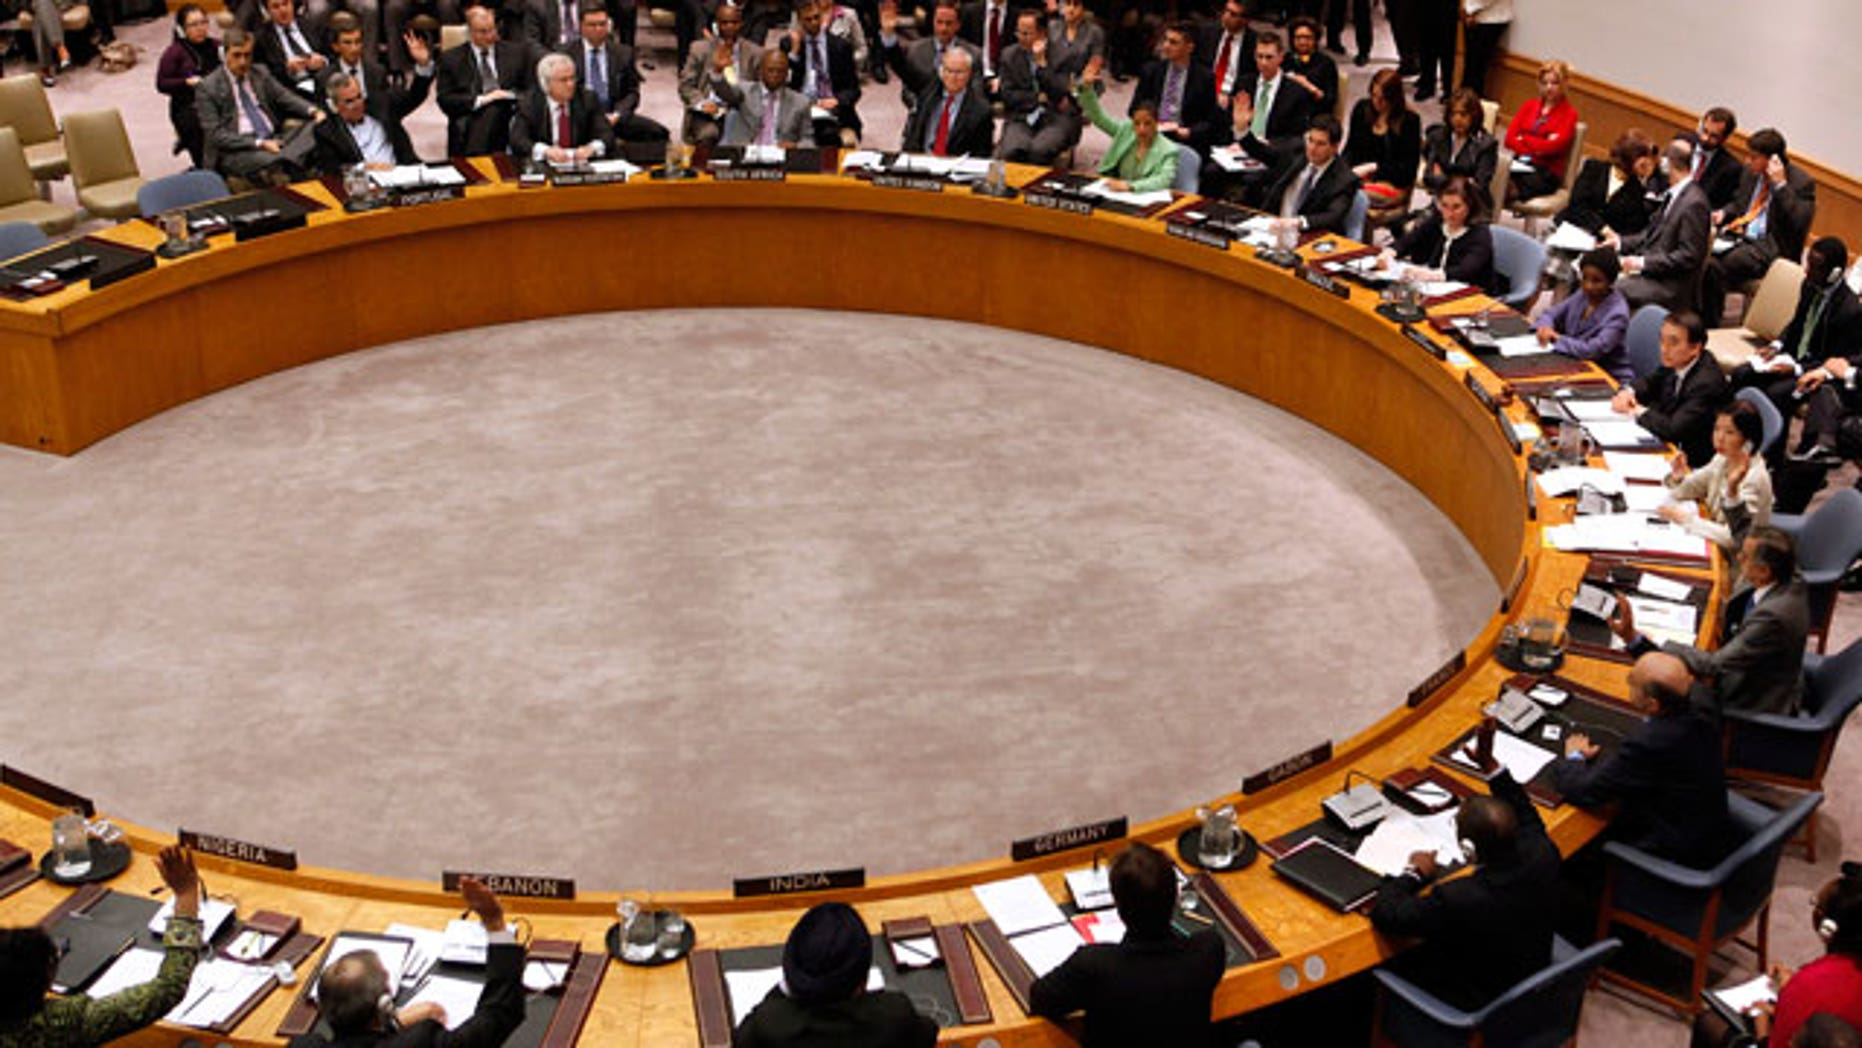 Member states vote to approve a resolution that will impose a no-fly zone over Libya during a meeting of the United Nations Security Council at UN headquarters Thursday, March 17, 2011. (AP)